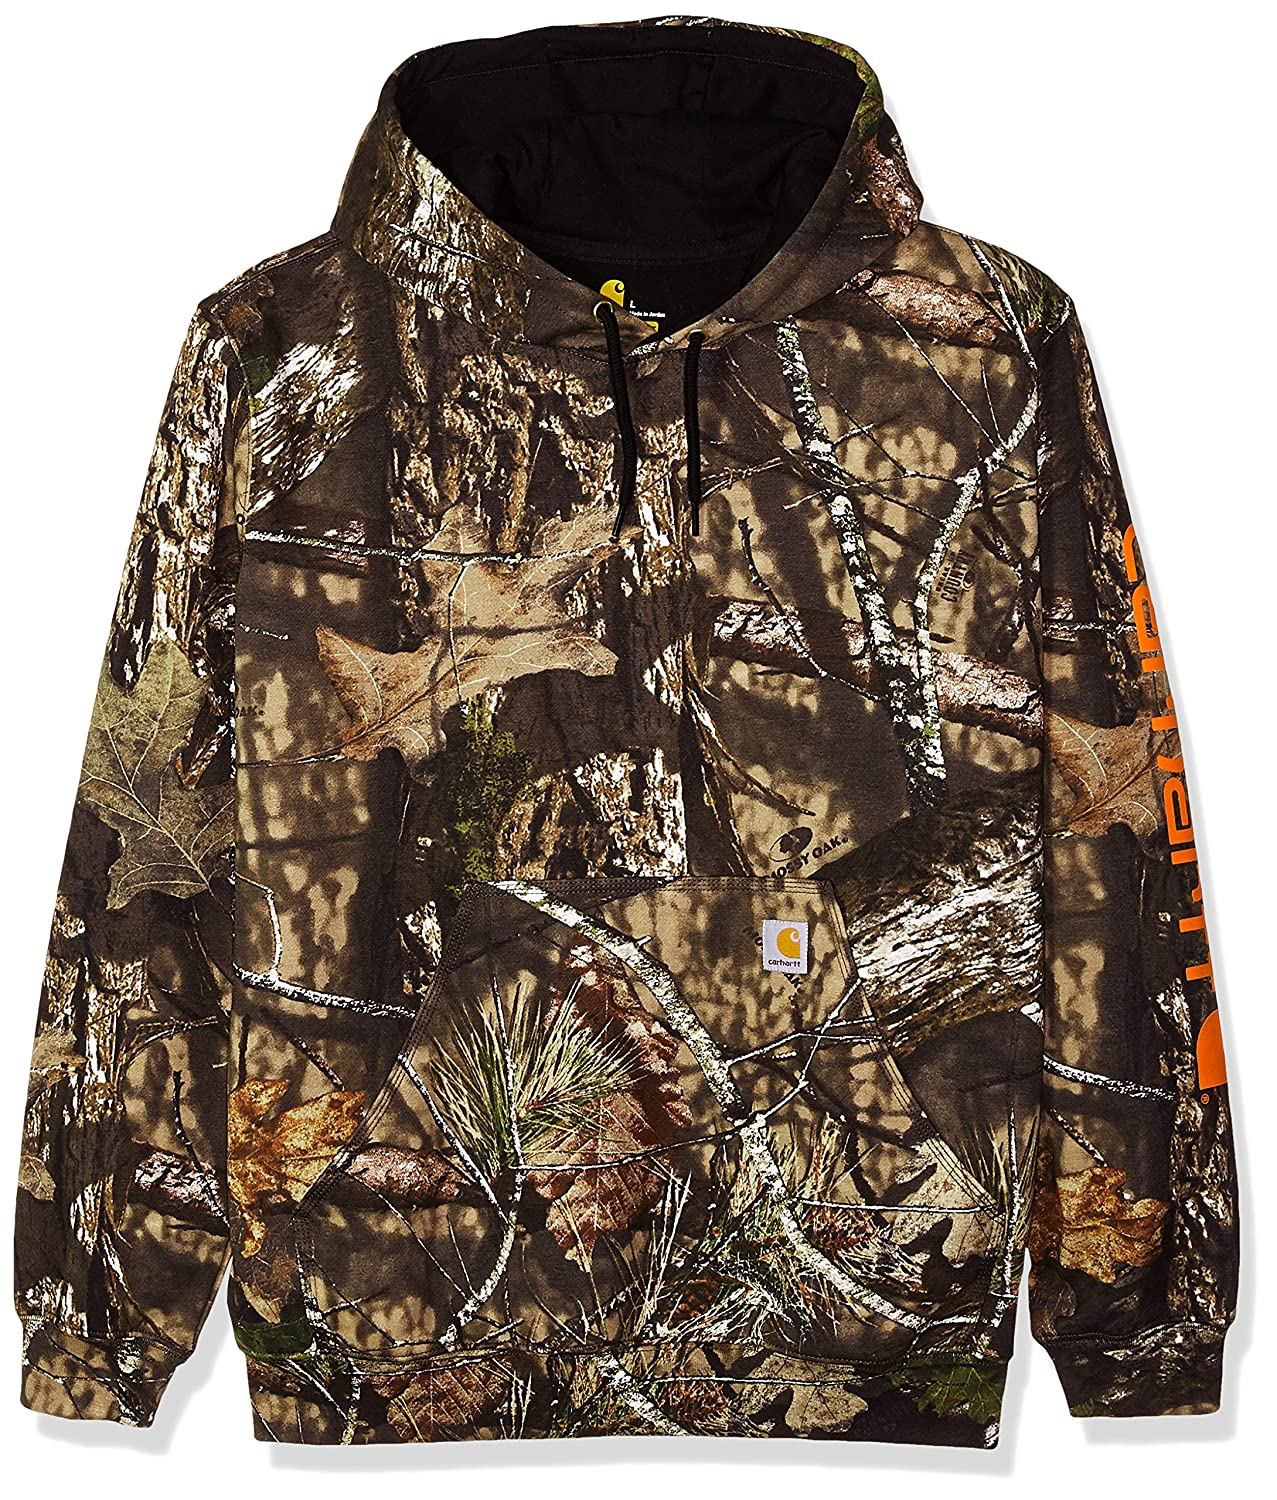 aeb9c5b1 Top1: Carhartt Men\'s Midweight Camo Sleeve Logo Hooded Sweatshirt